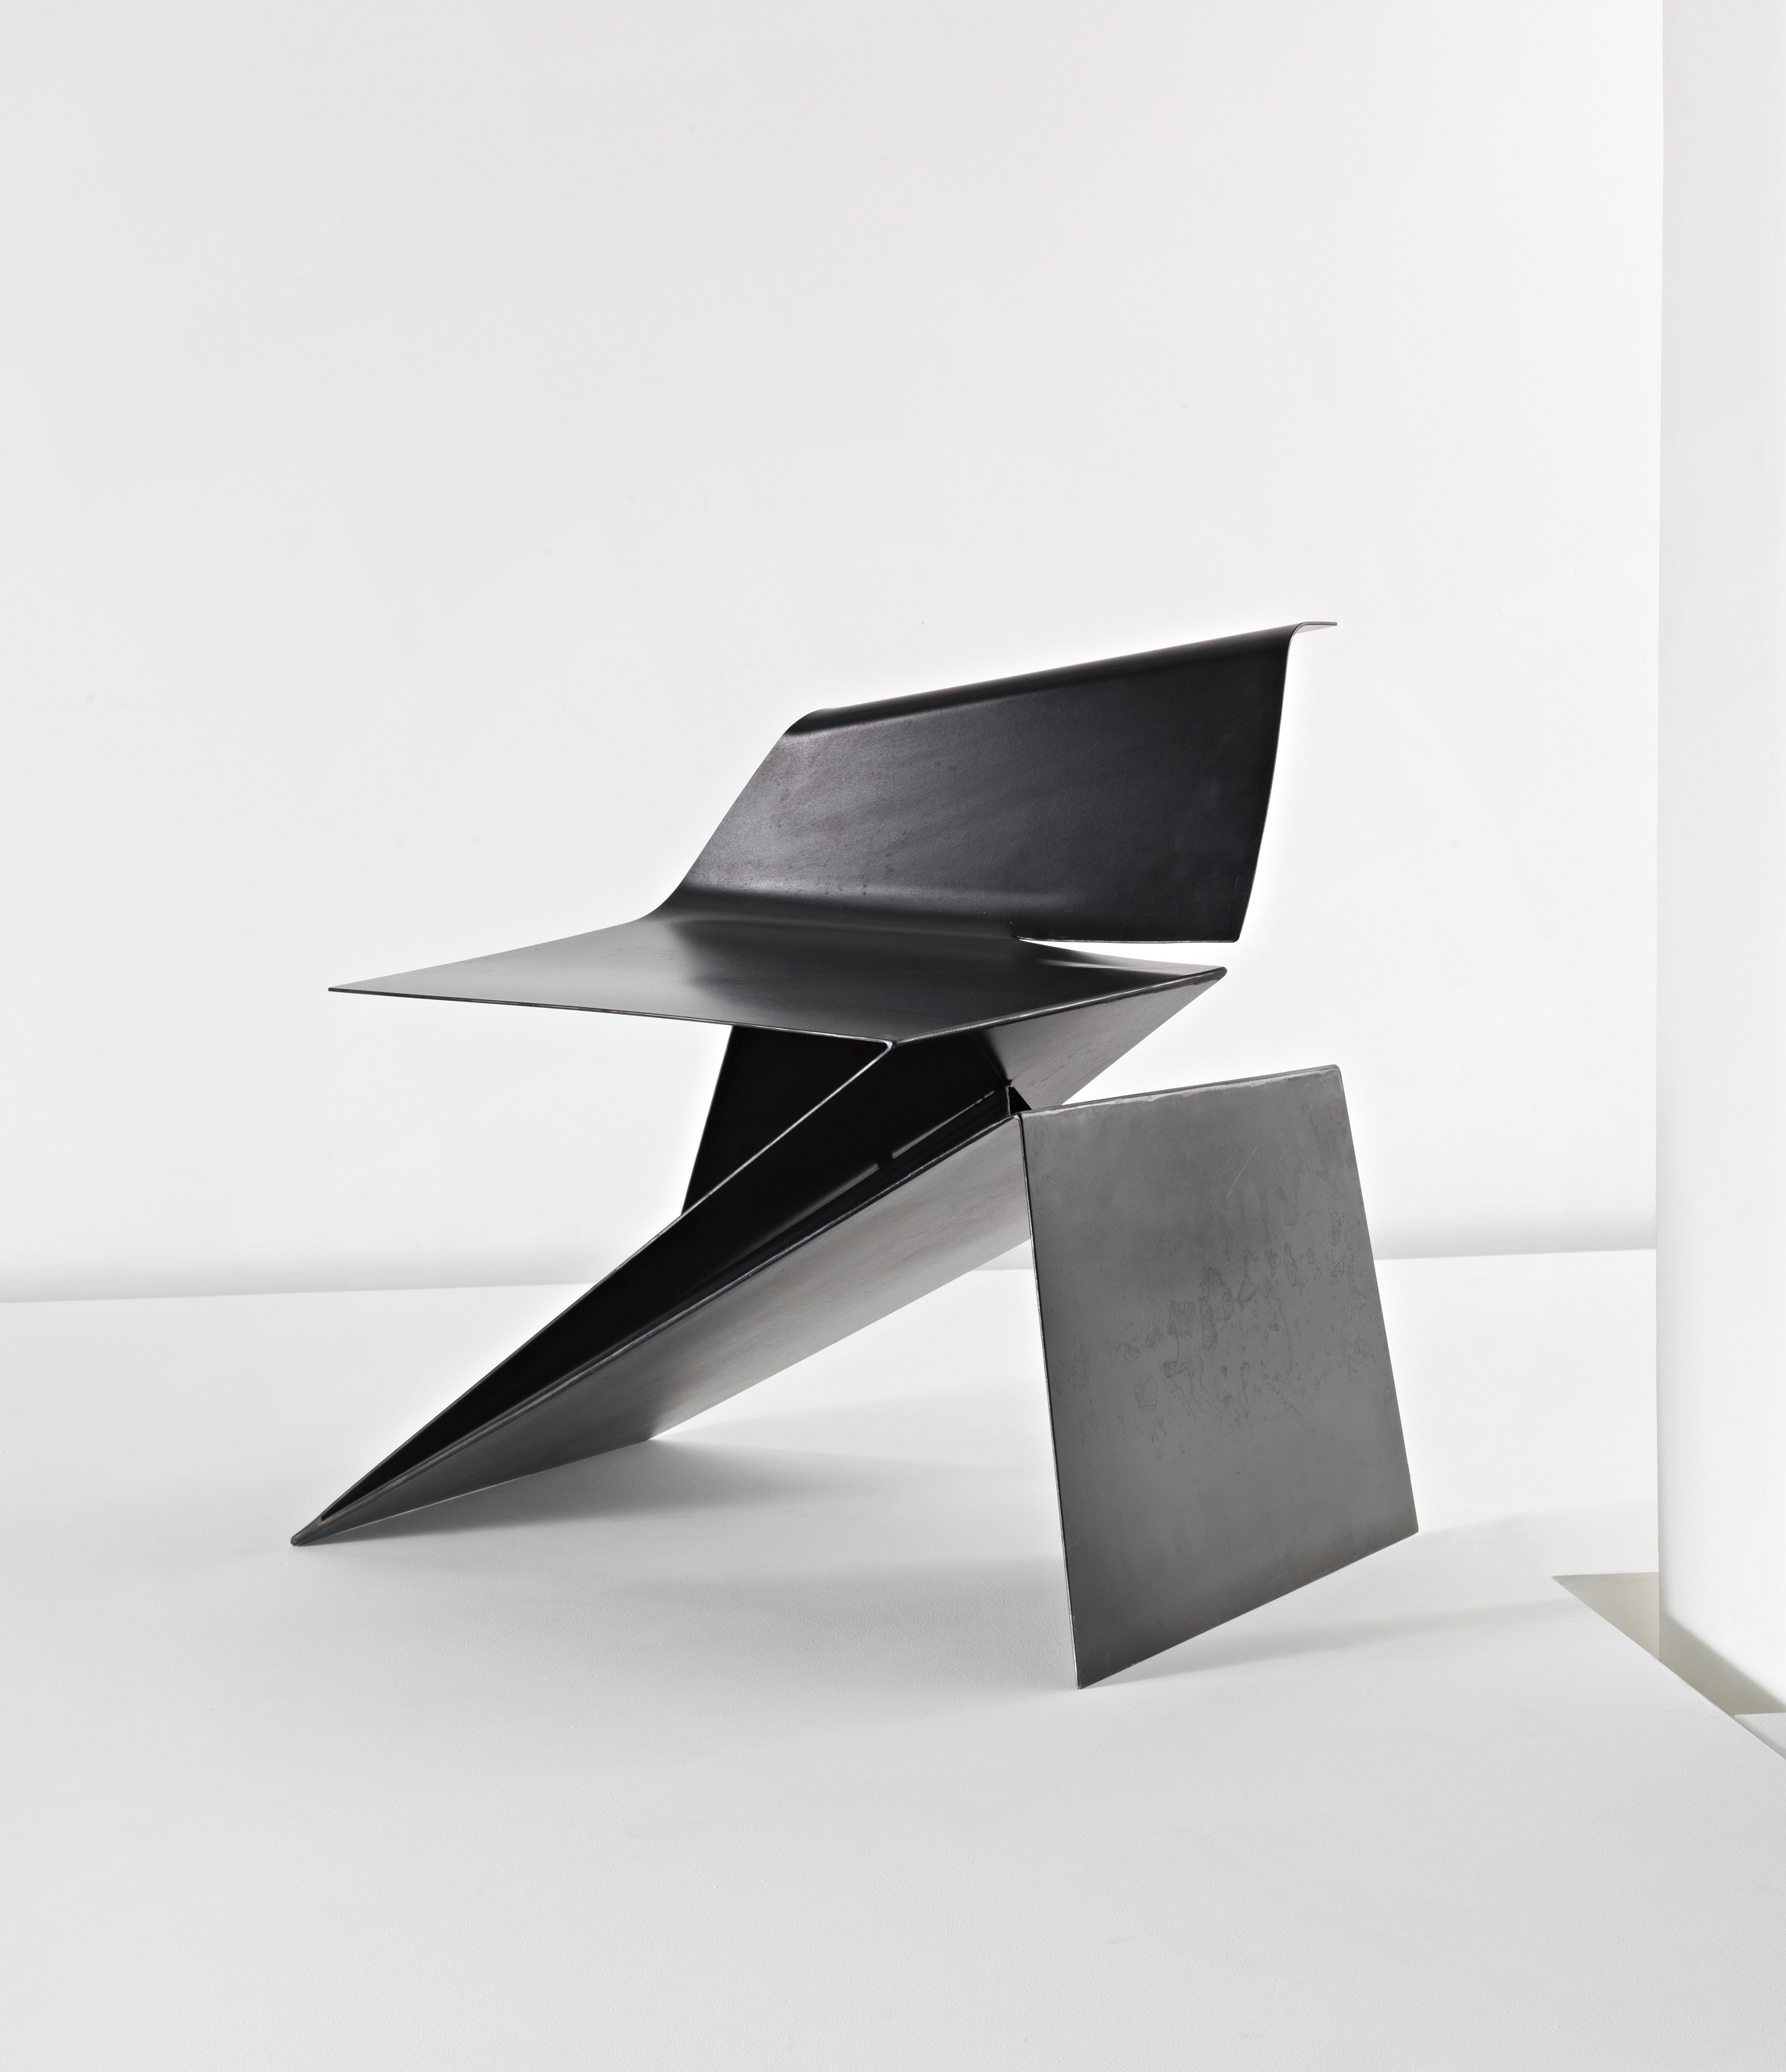 Prototype Origami chair by Philip Michael Wolfson ... - photo#41